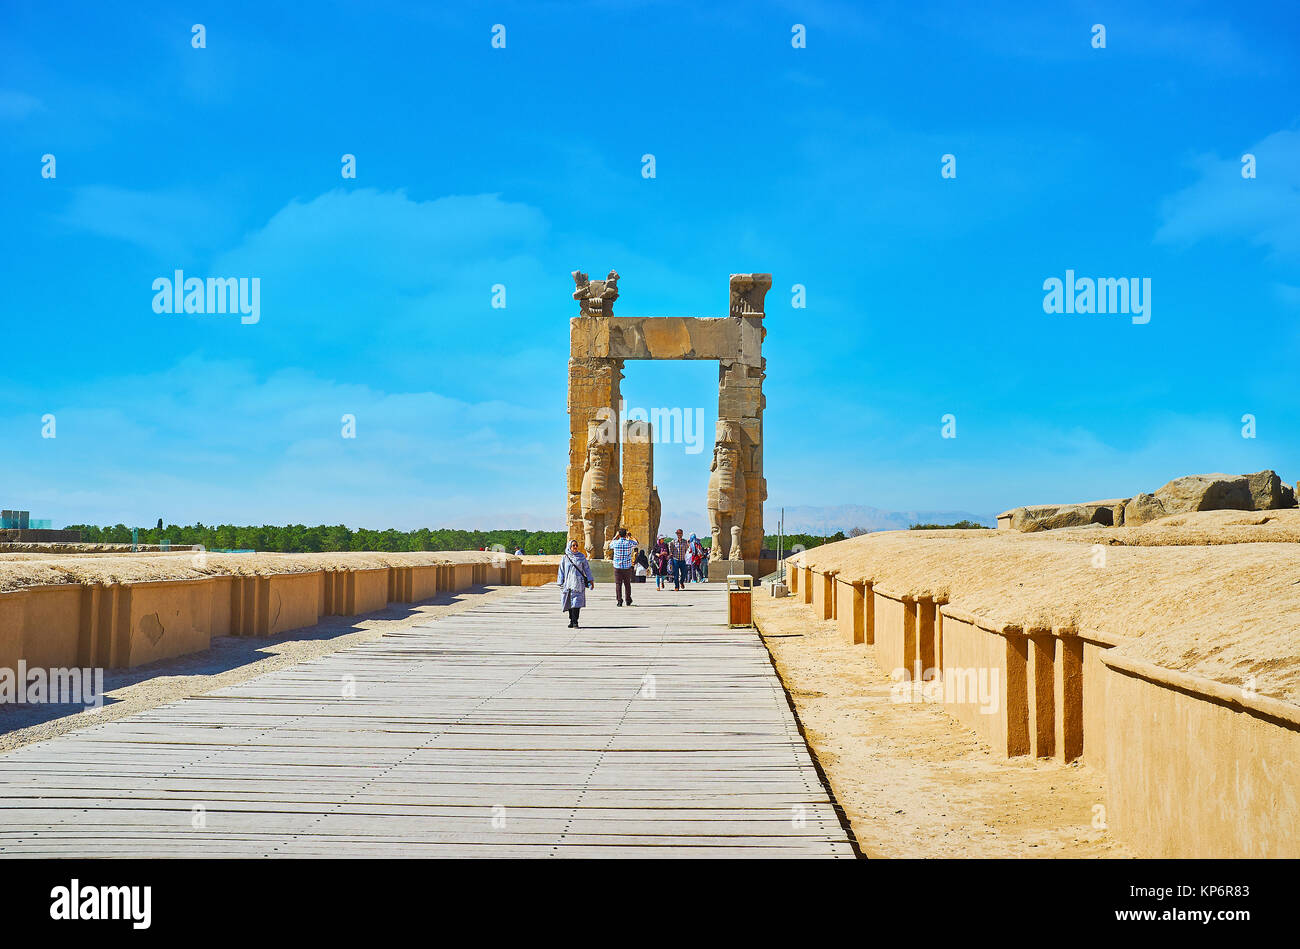 PERSEPOLIS, IRAN - OCTOBER 13, 2017: The way along the foundations of ancient buildings to All Nations Gates (Xerxes - Stock Image